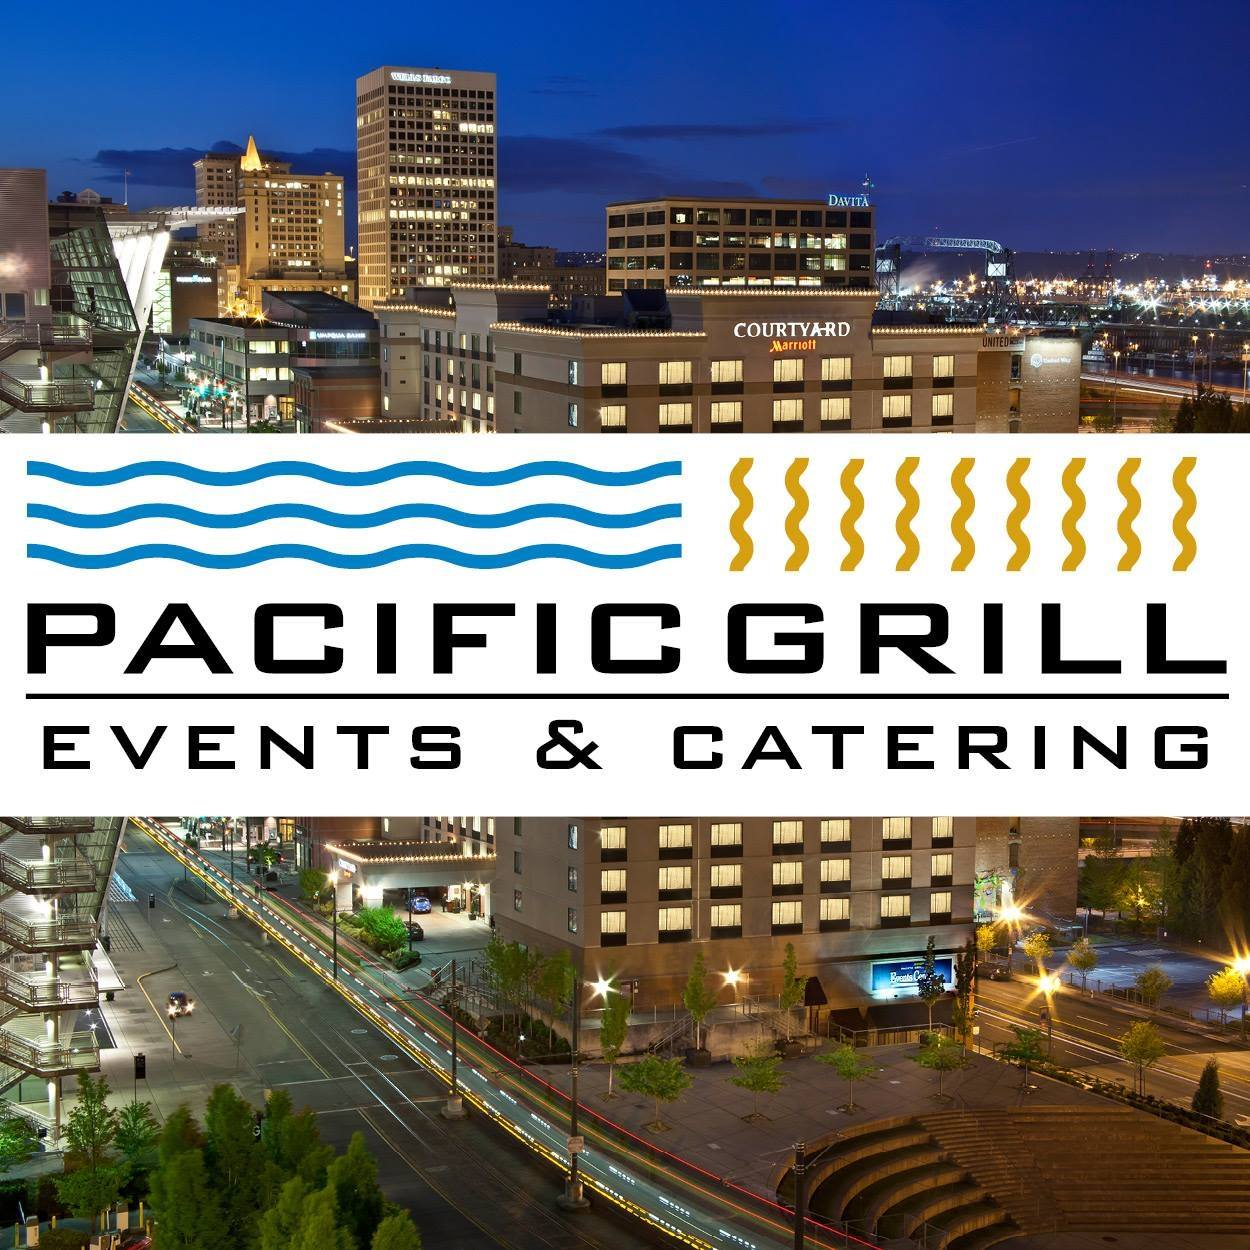 Images from    Pacific Grill Events & Catering